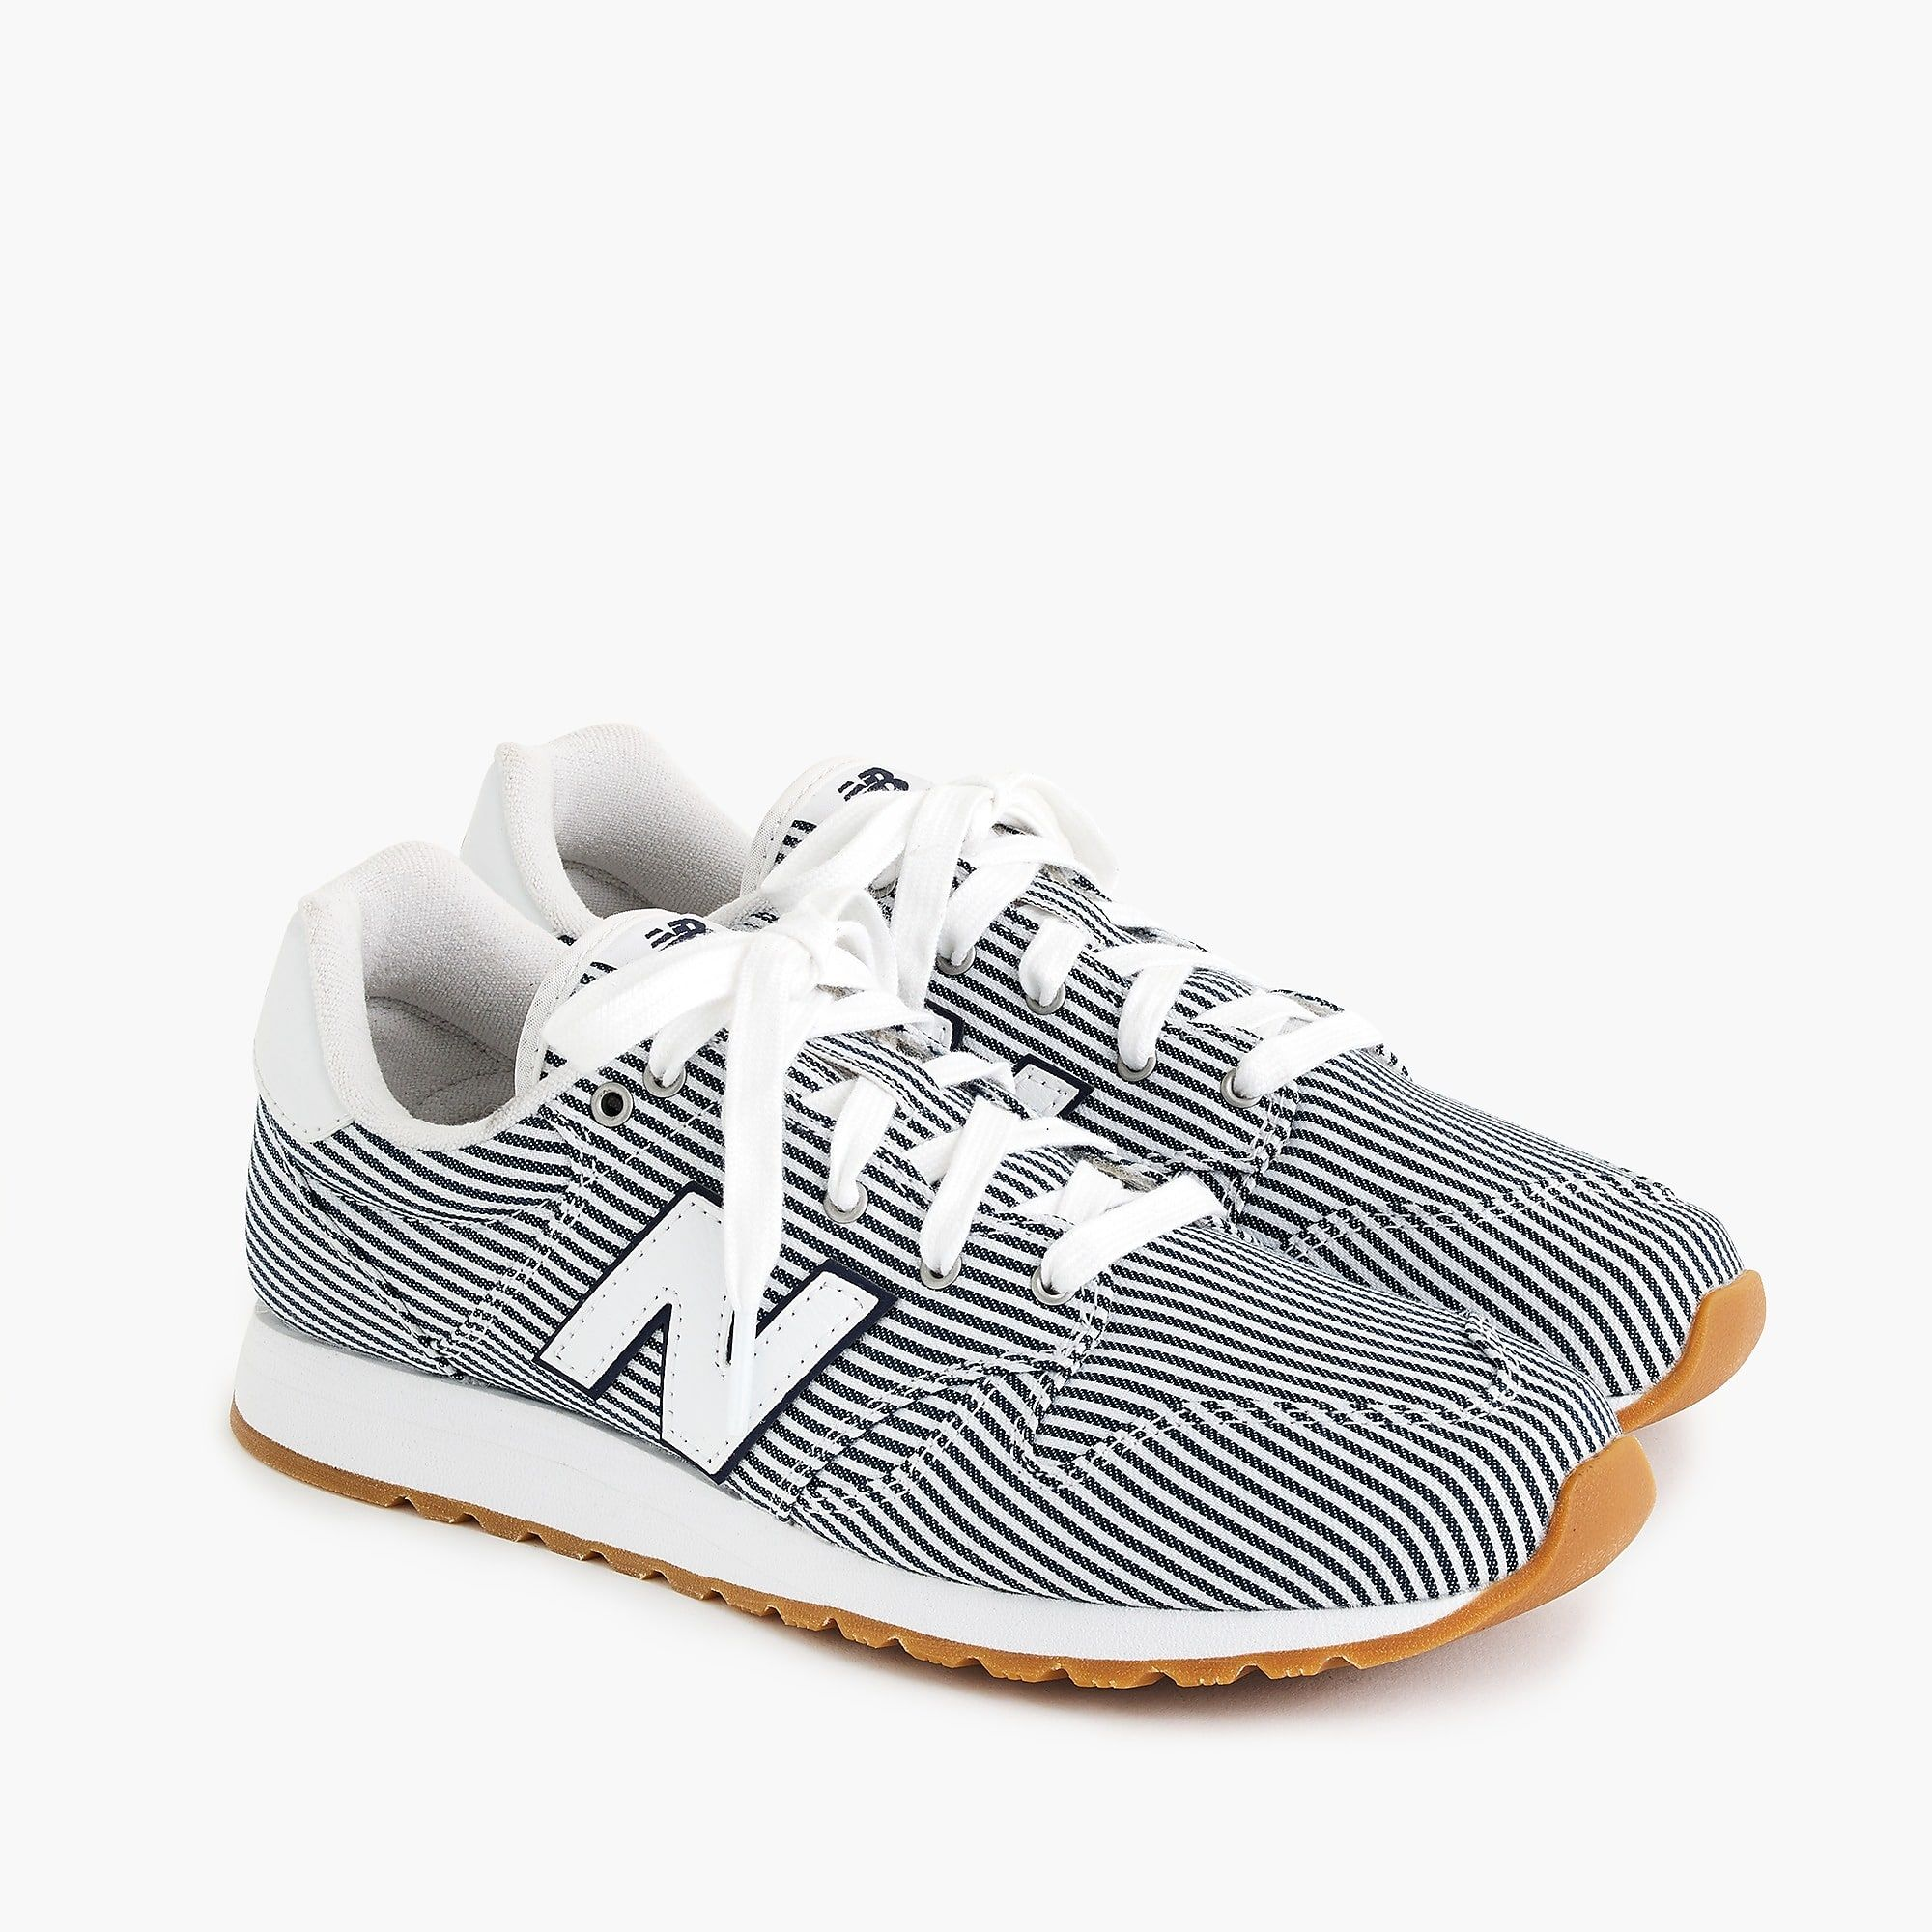 f225097f60ce0e Women s New Balance for J.Crew 520 sneakers     shoes  stripes ...